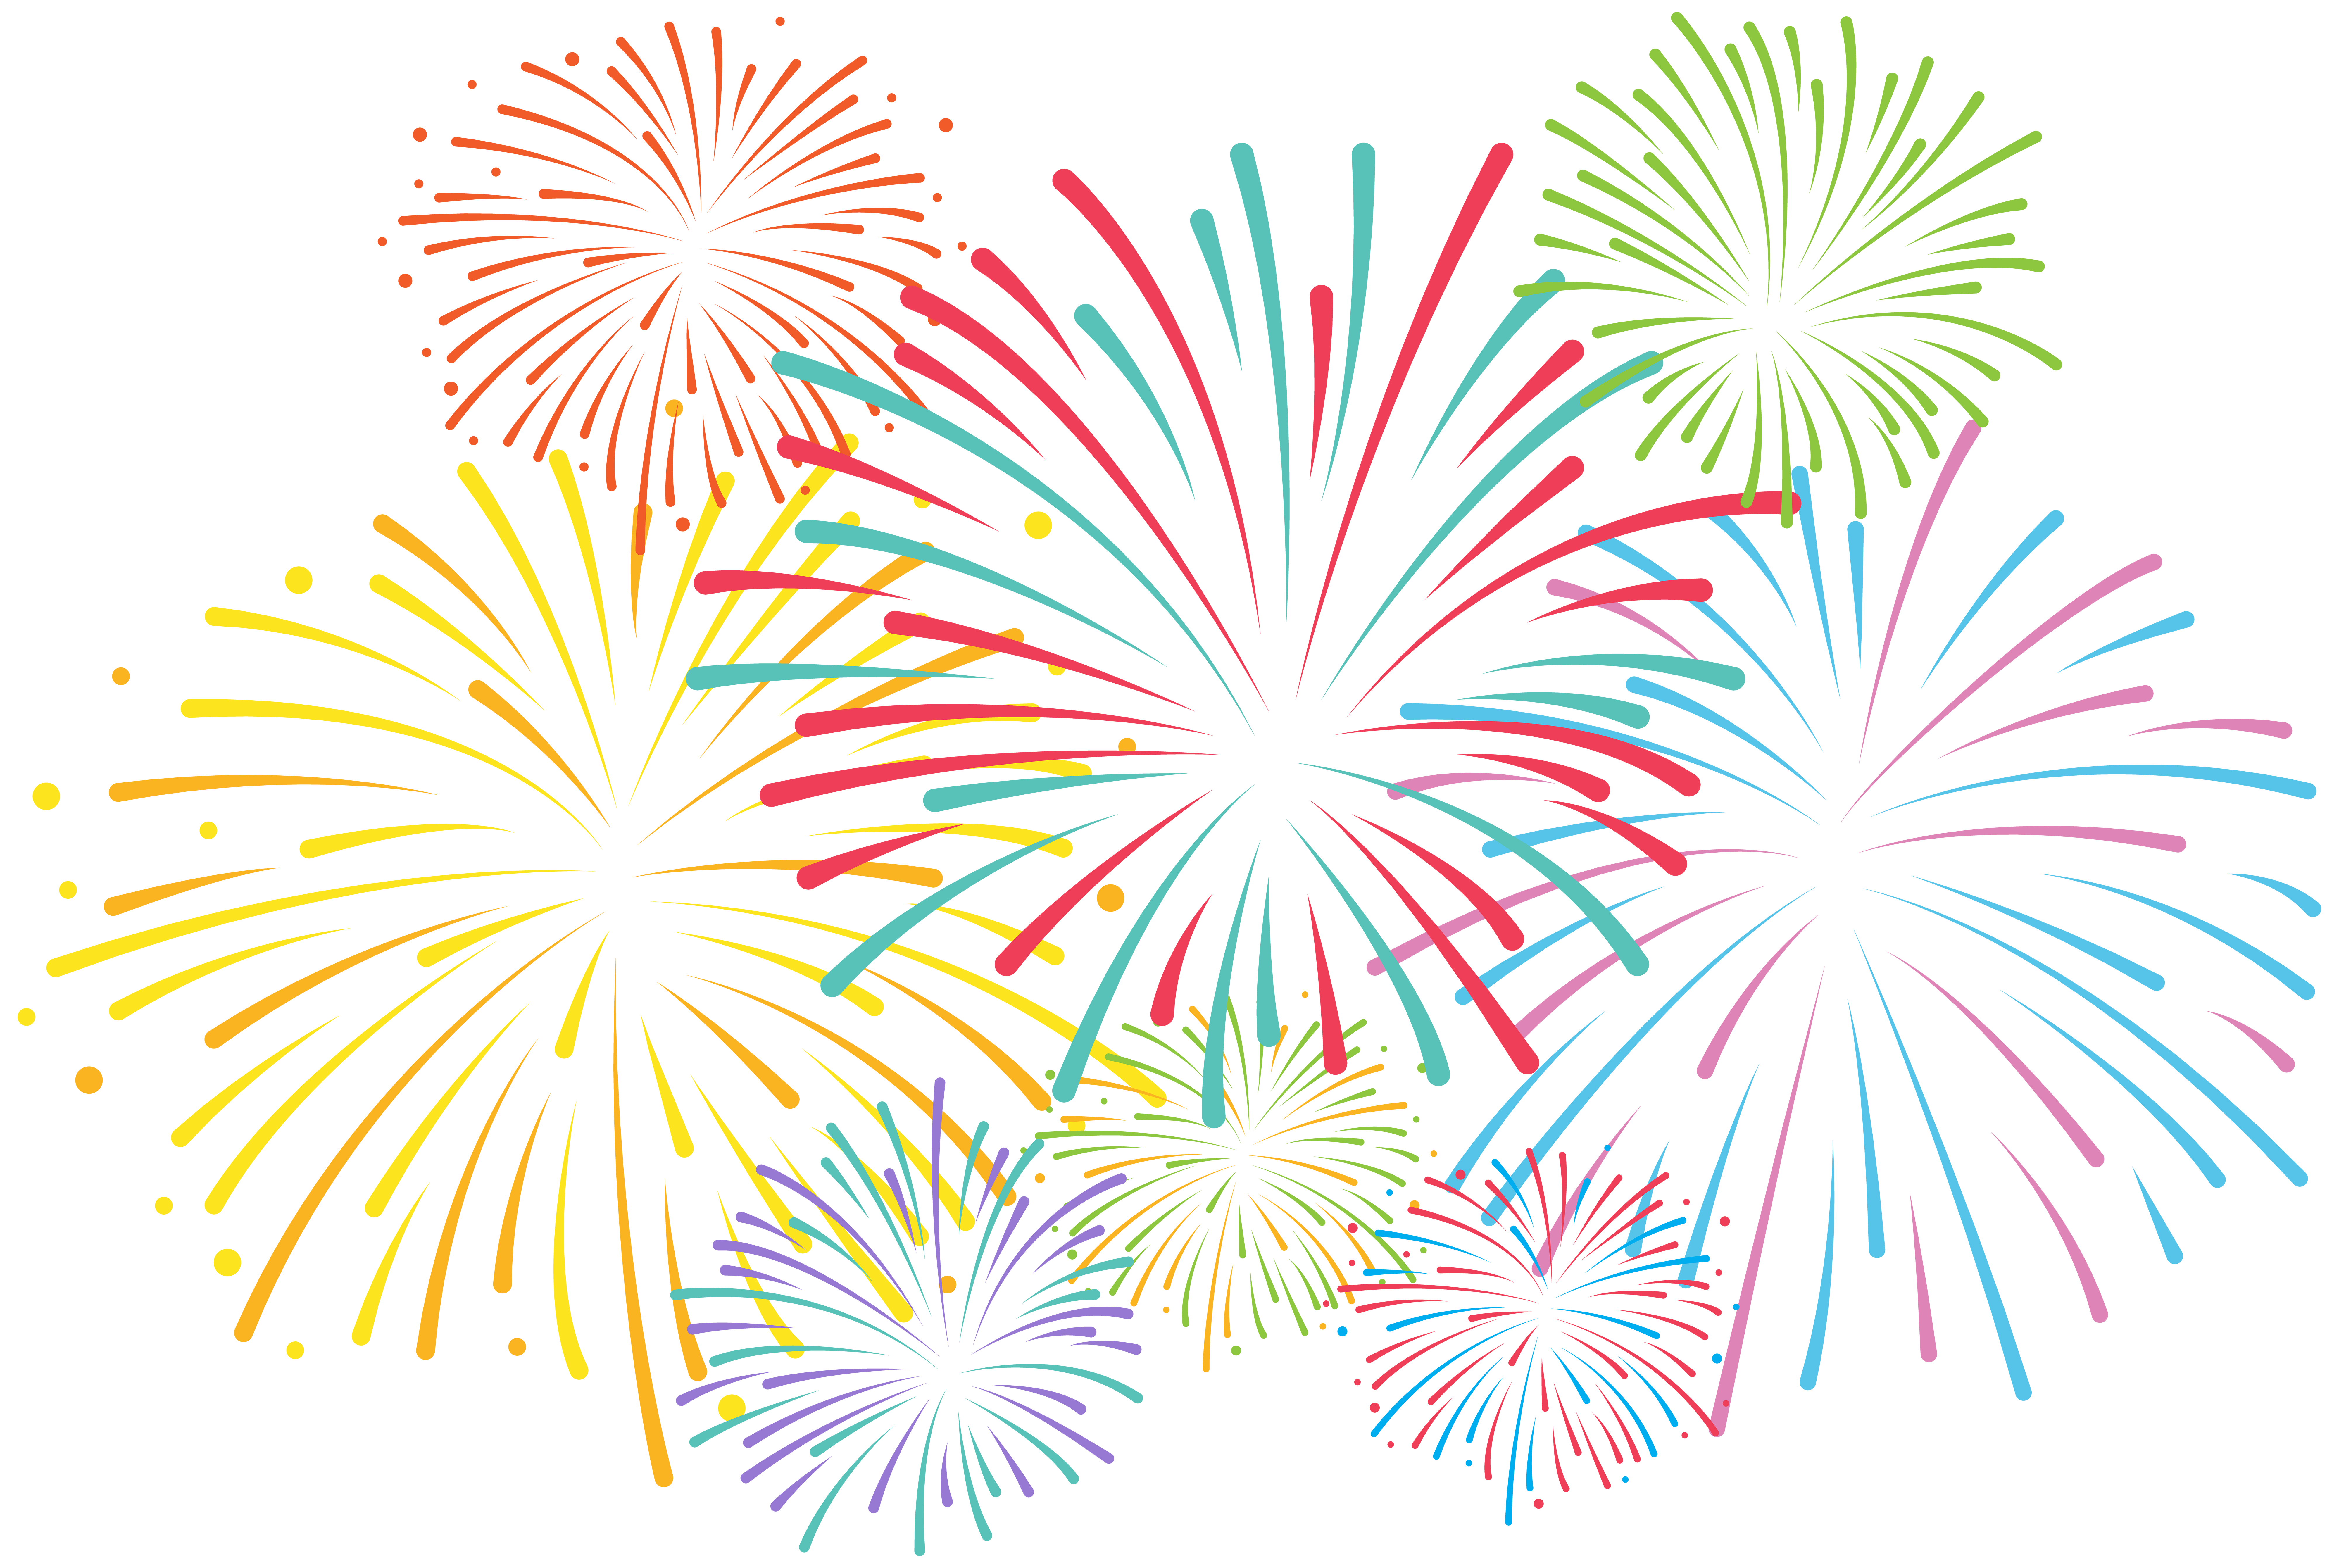 hight resolution of fireworks clipart fireworks animation animated clipart fire image social media art